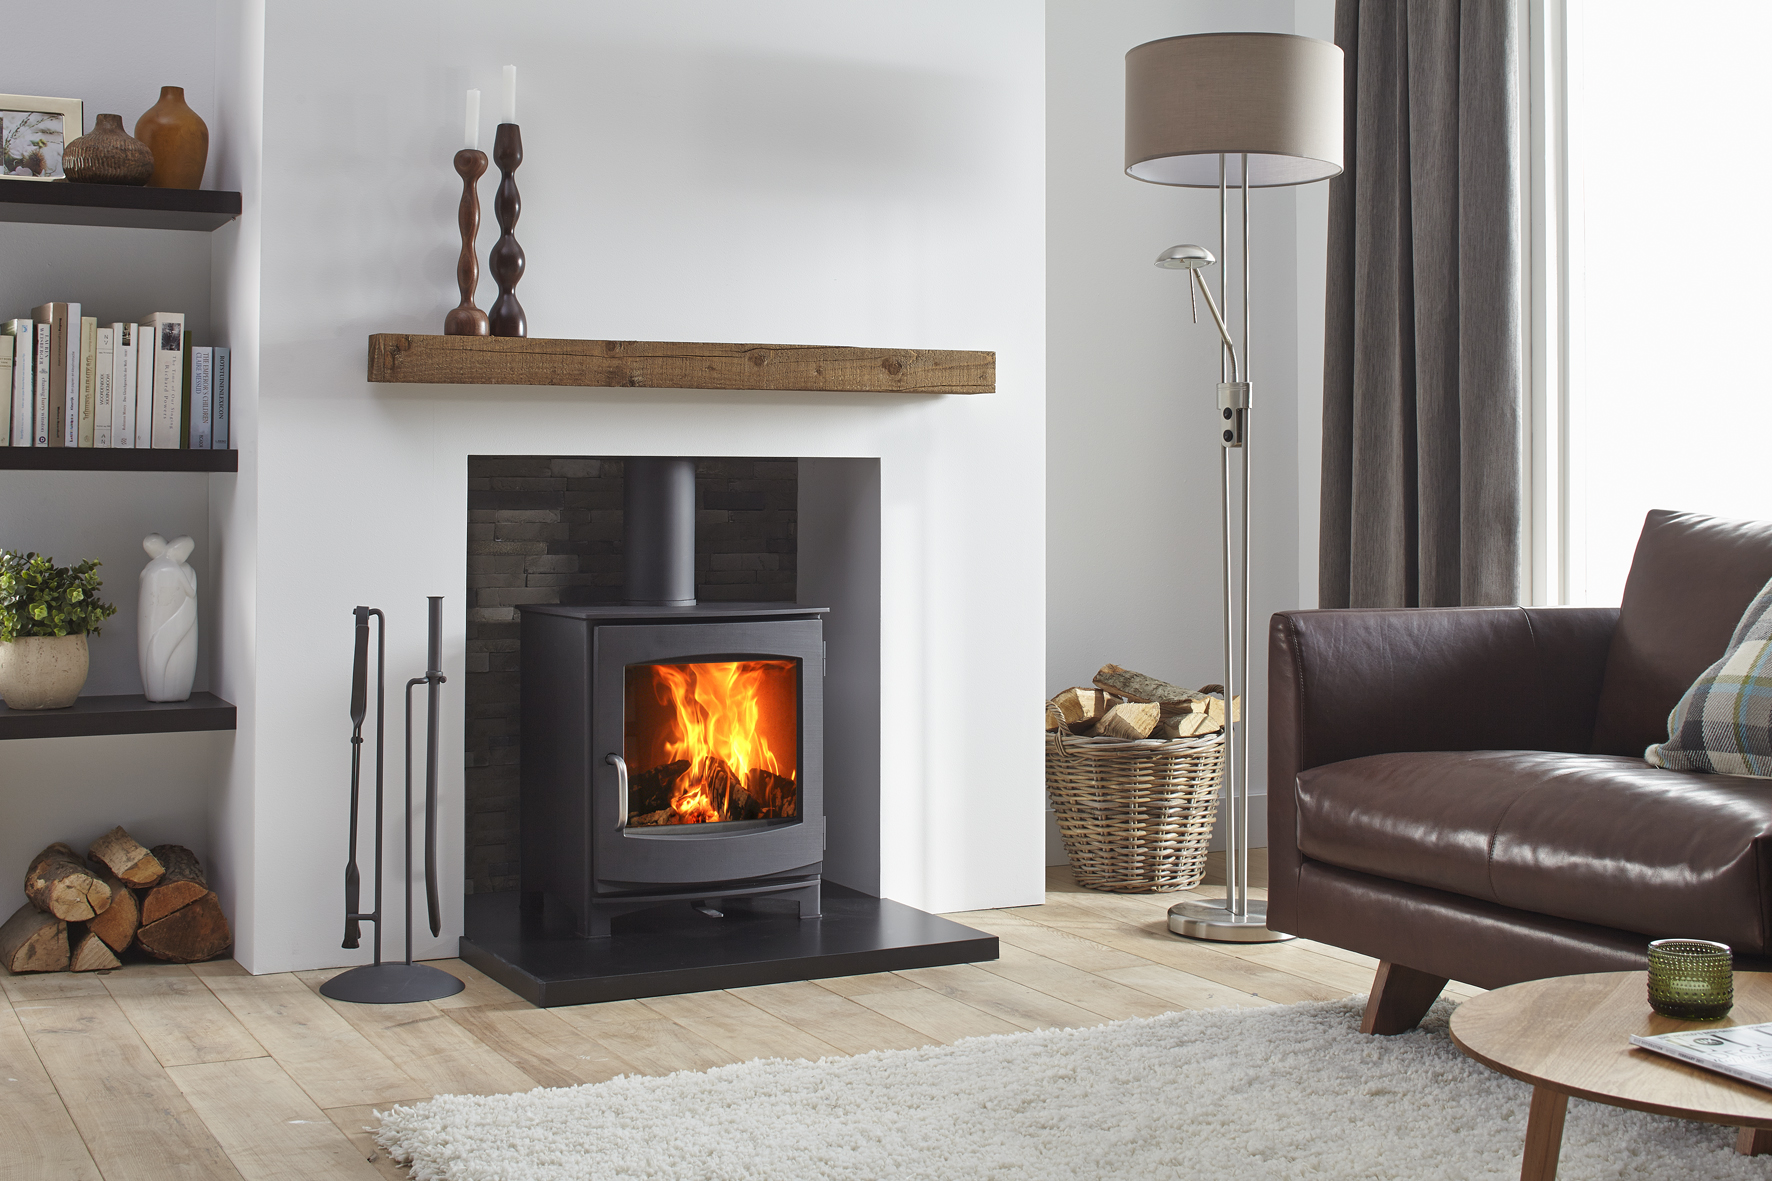 Witney Stoves can line your chimney, supply and install your stove